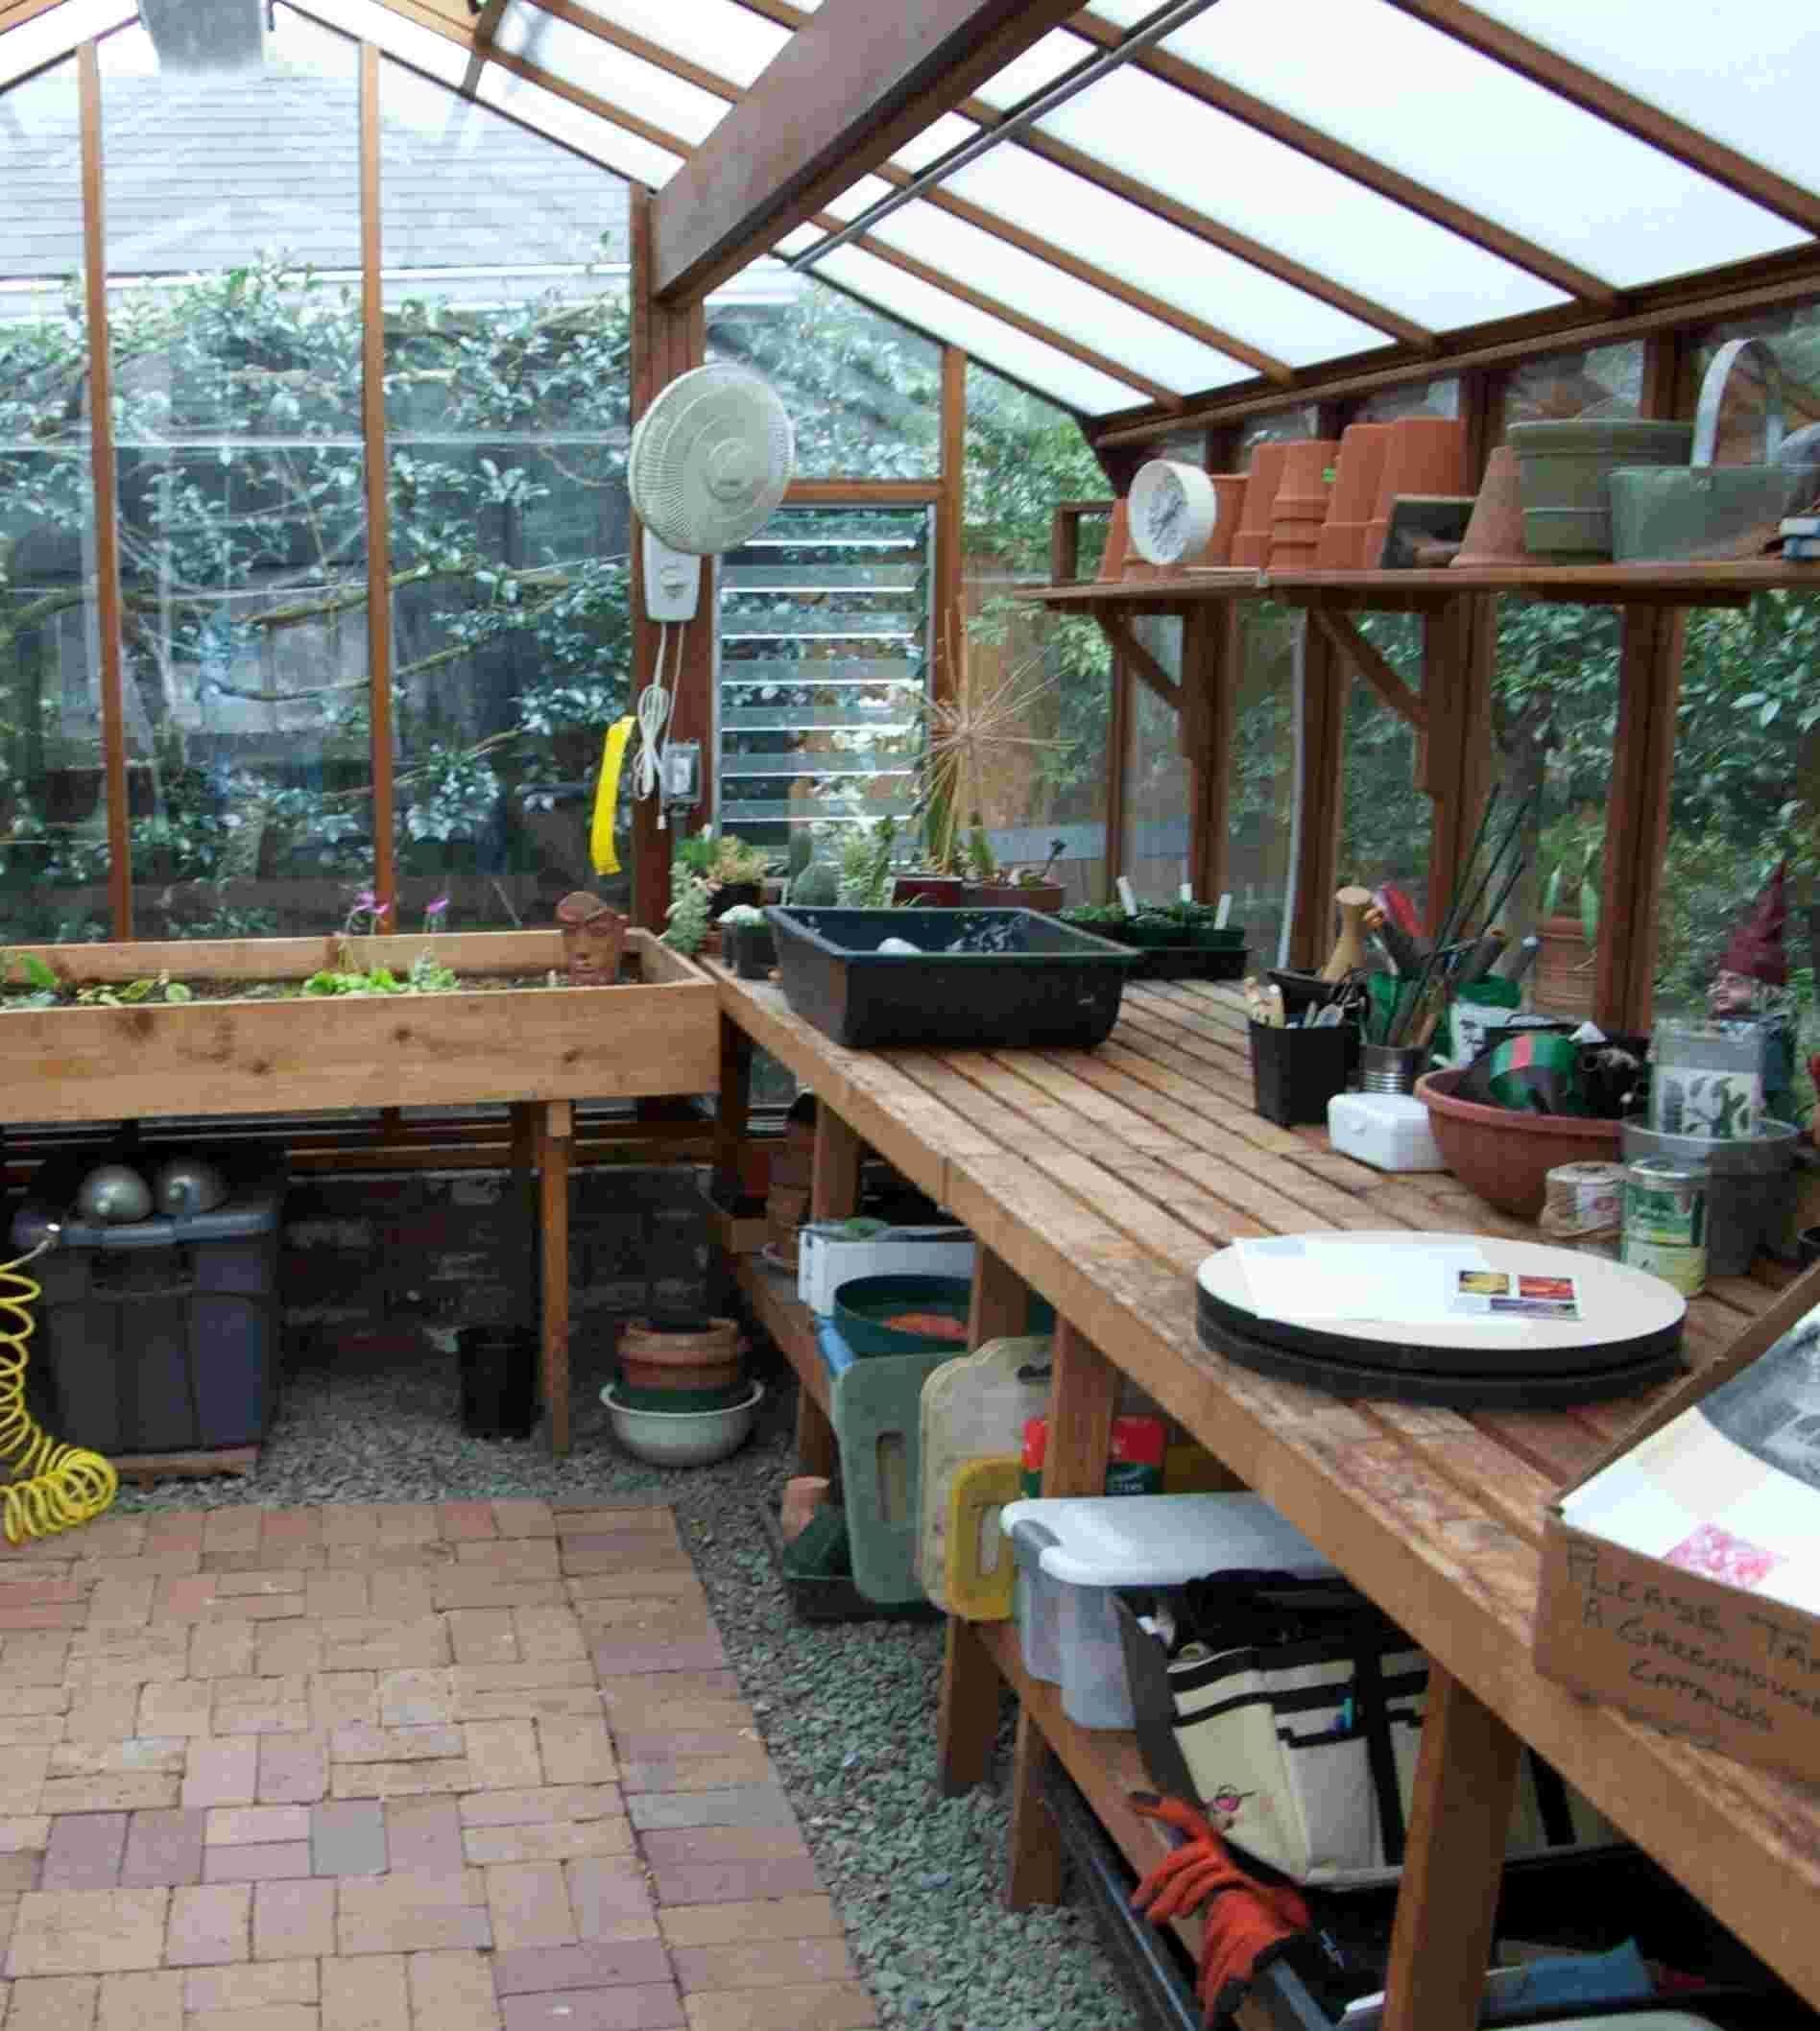 Greenhouse Layout Ideas The Four Basic Greenhouse Designs For The Home Gardener Backyard Greenhouse Greenhouse Benches Home Greenhouse